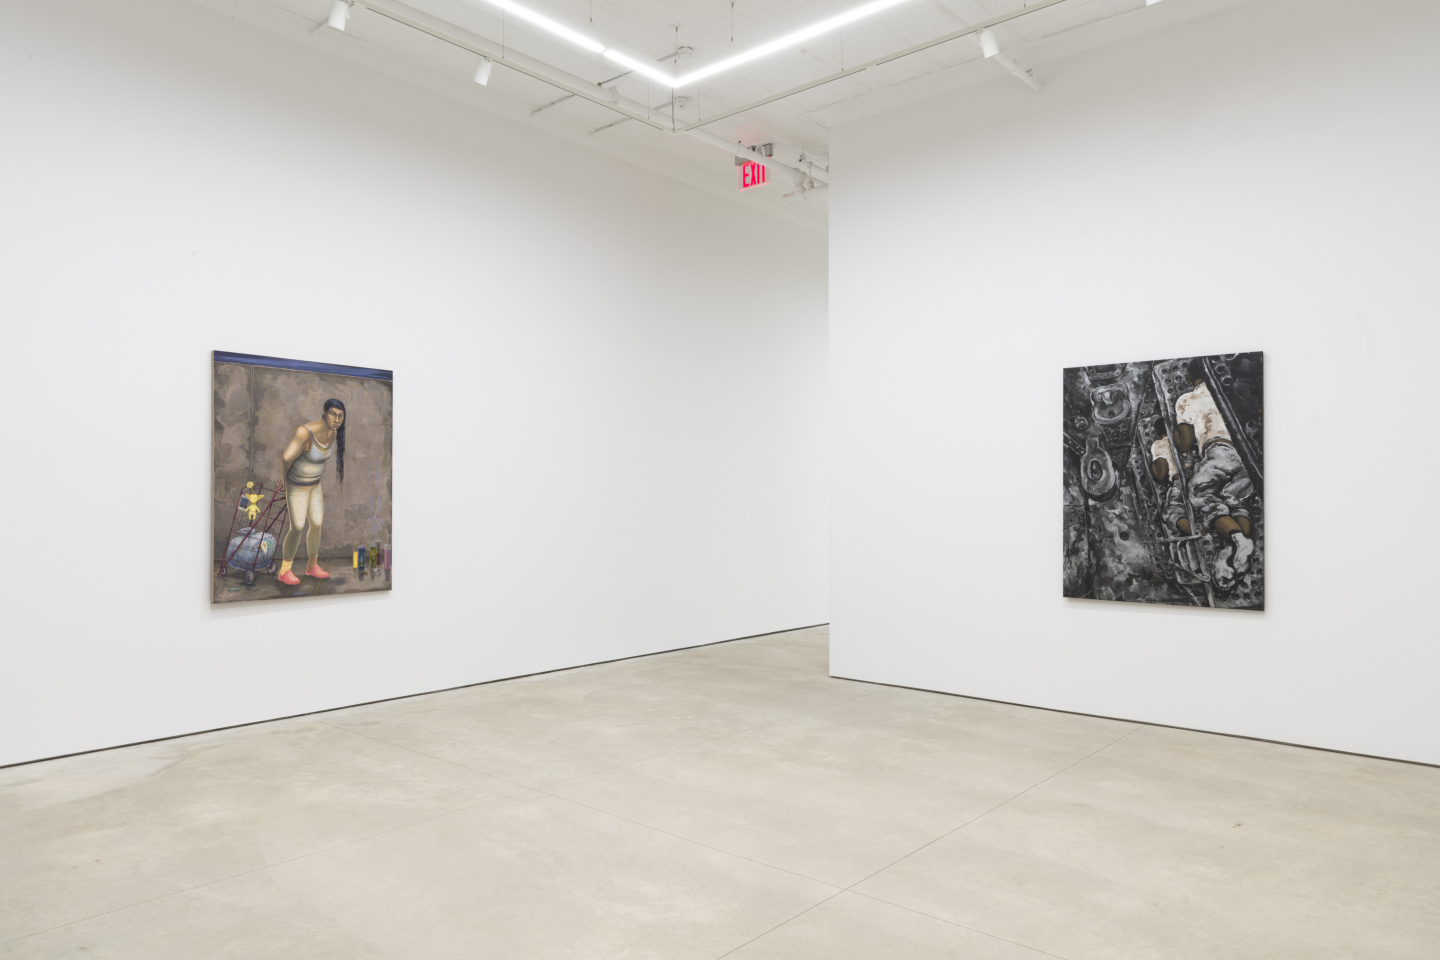 Courtesy of Aaron Gilbert, the Estate of Martin Wong, and P·P·O·W, New York